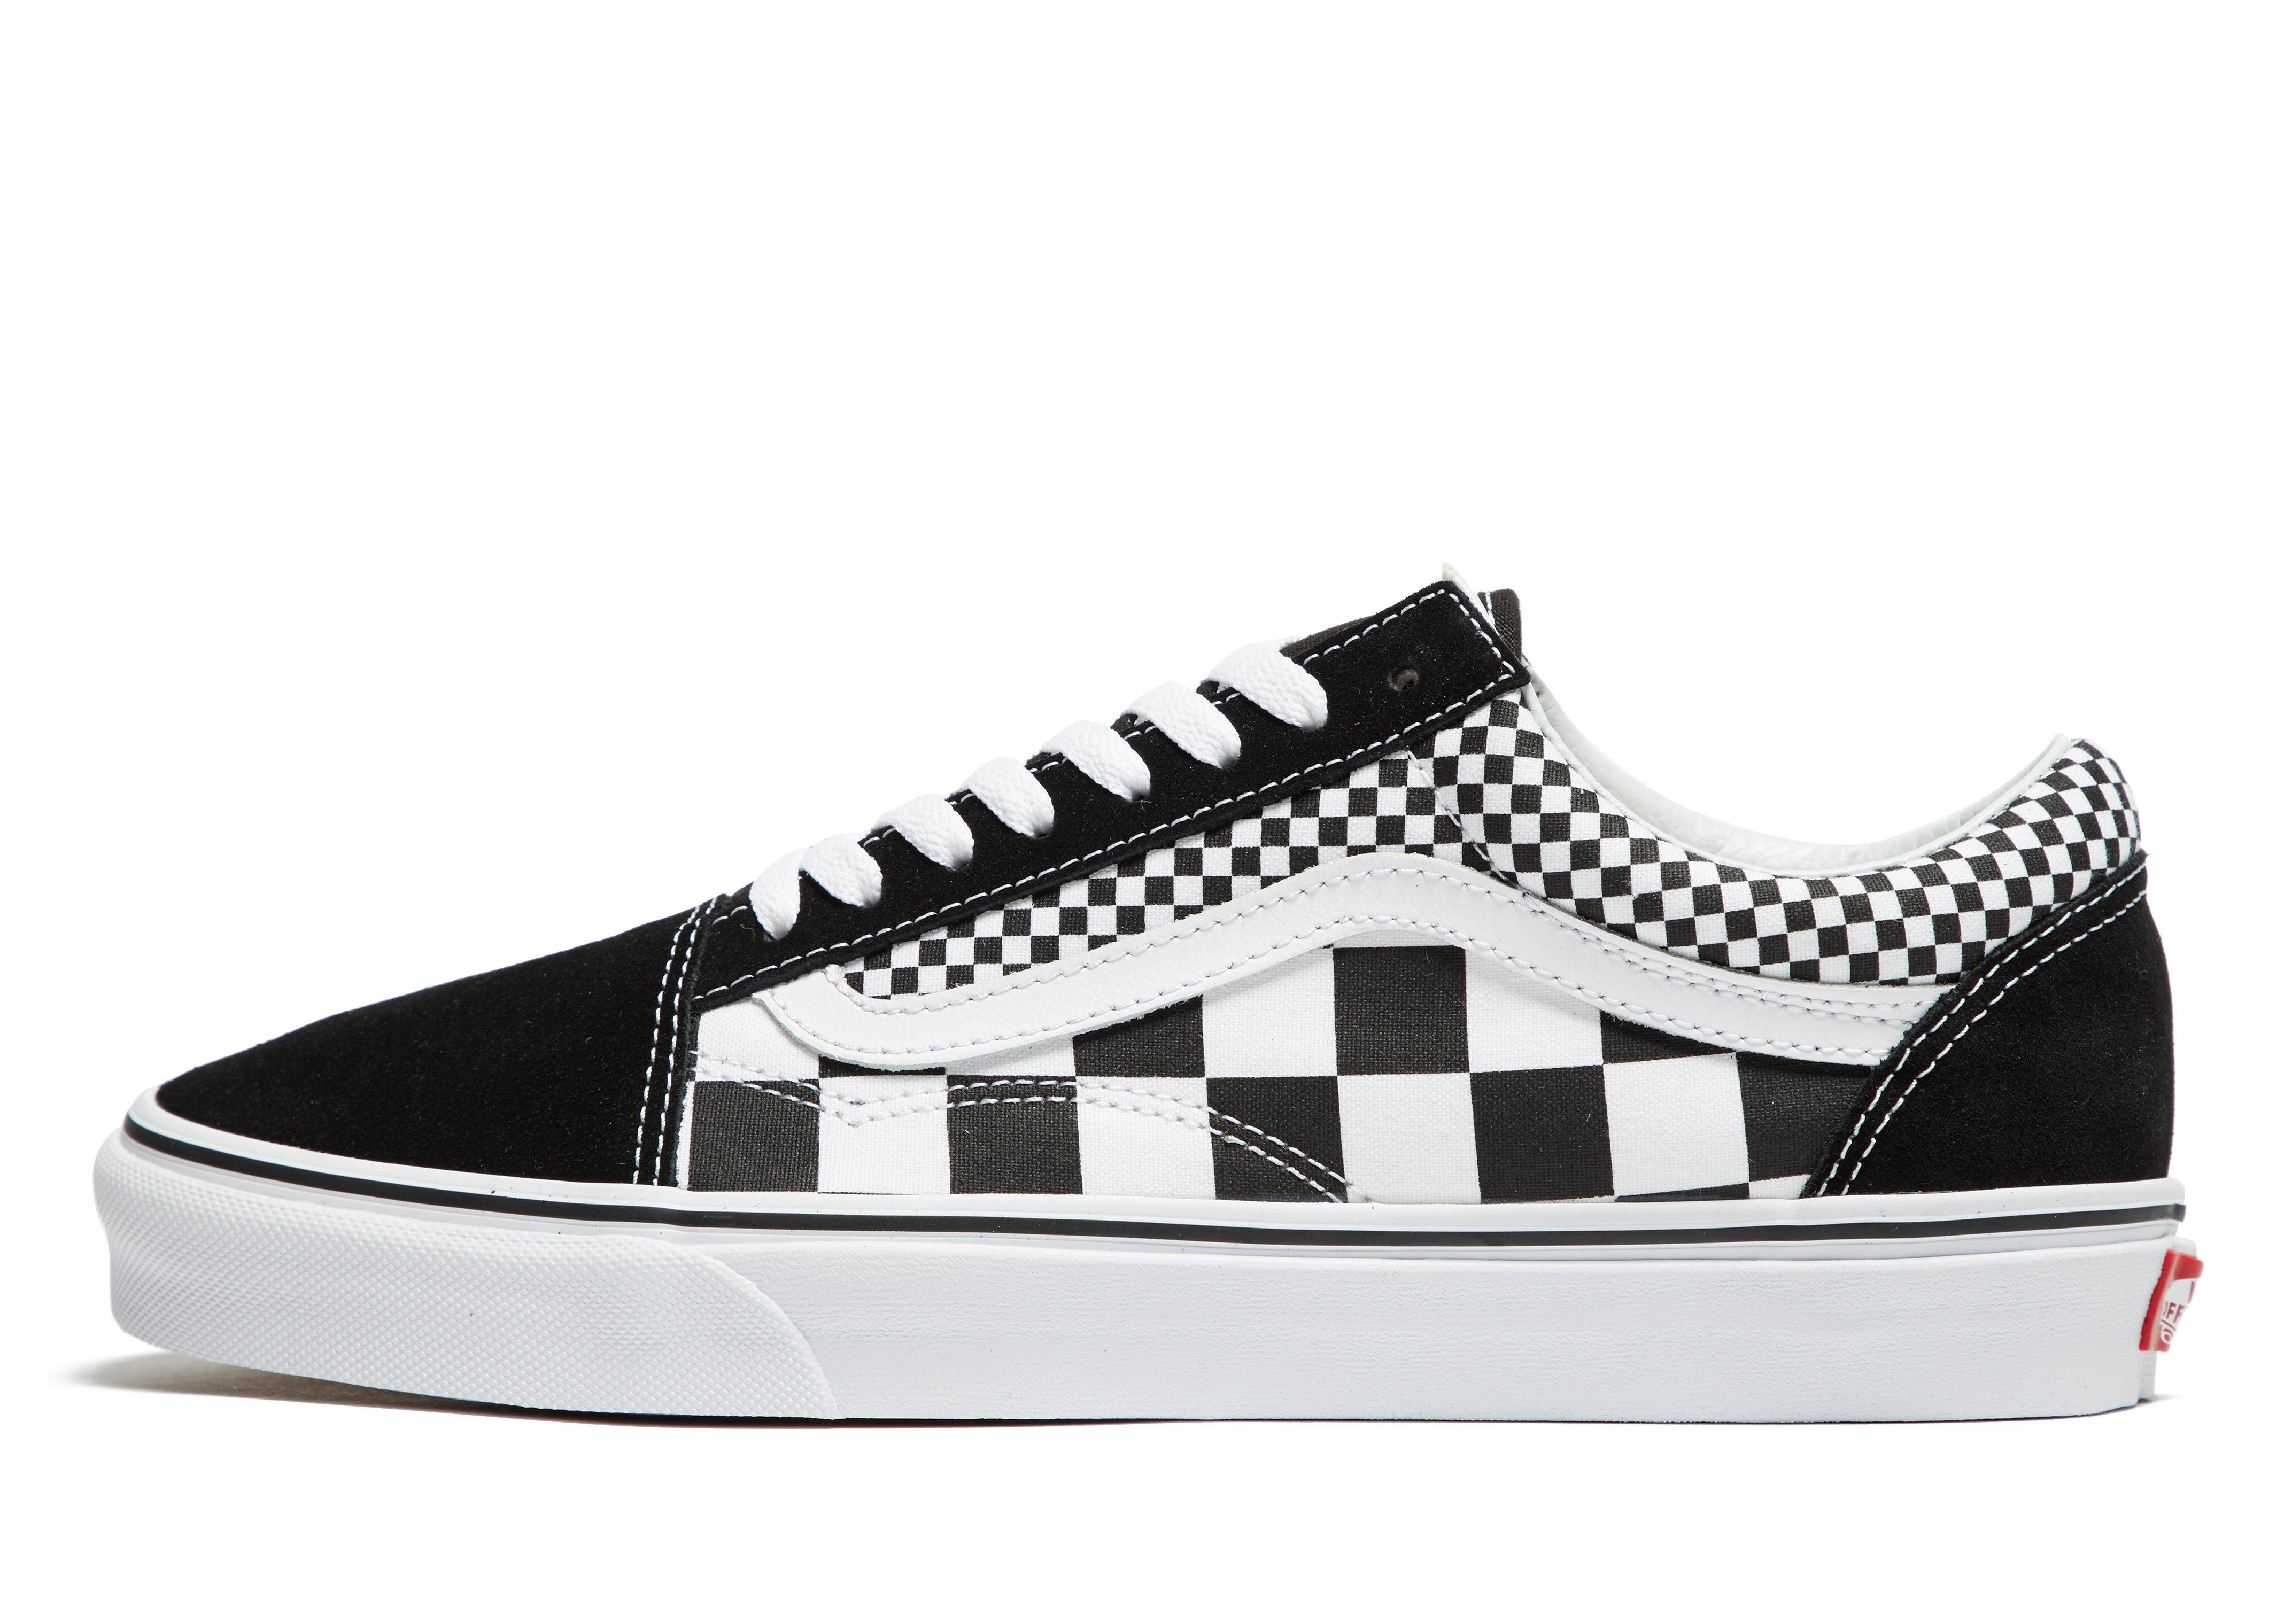 Vans Cuadros Vans Old Skool Jd Sports